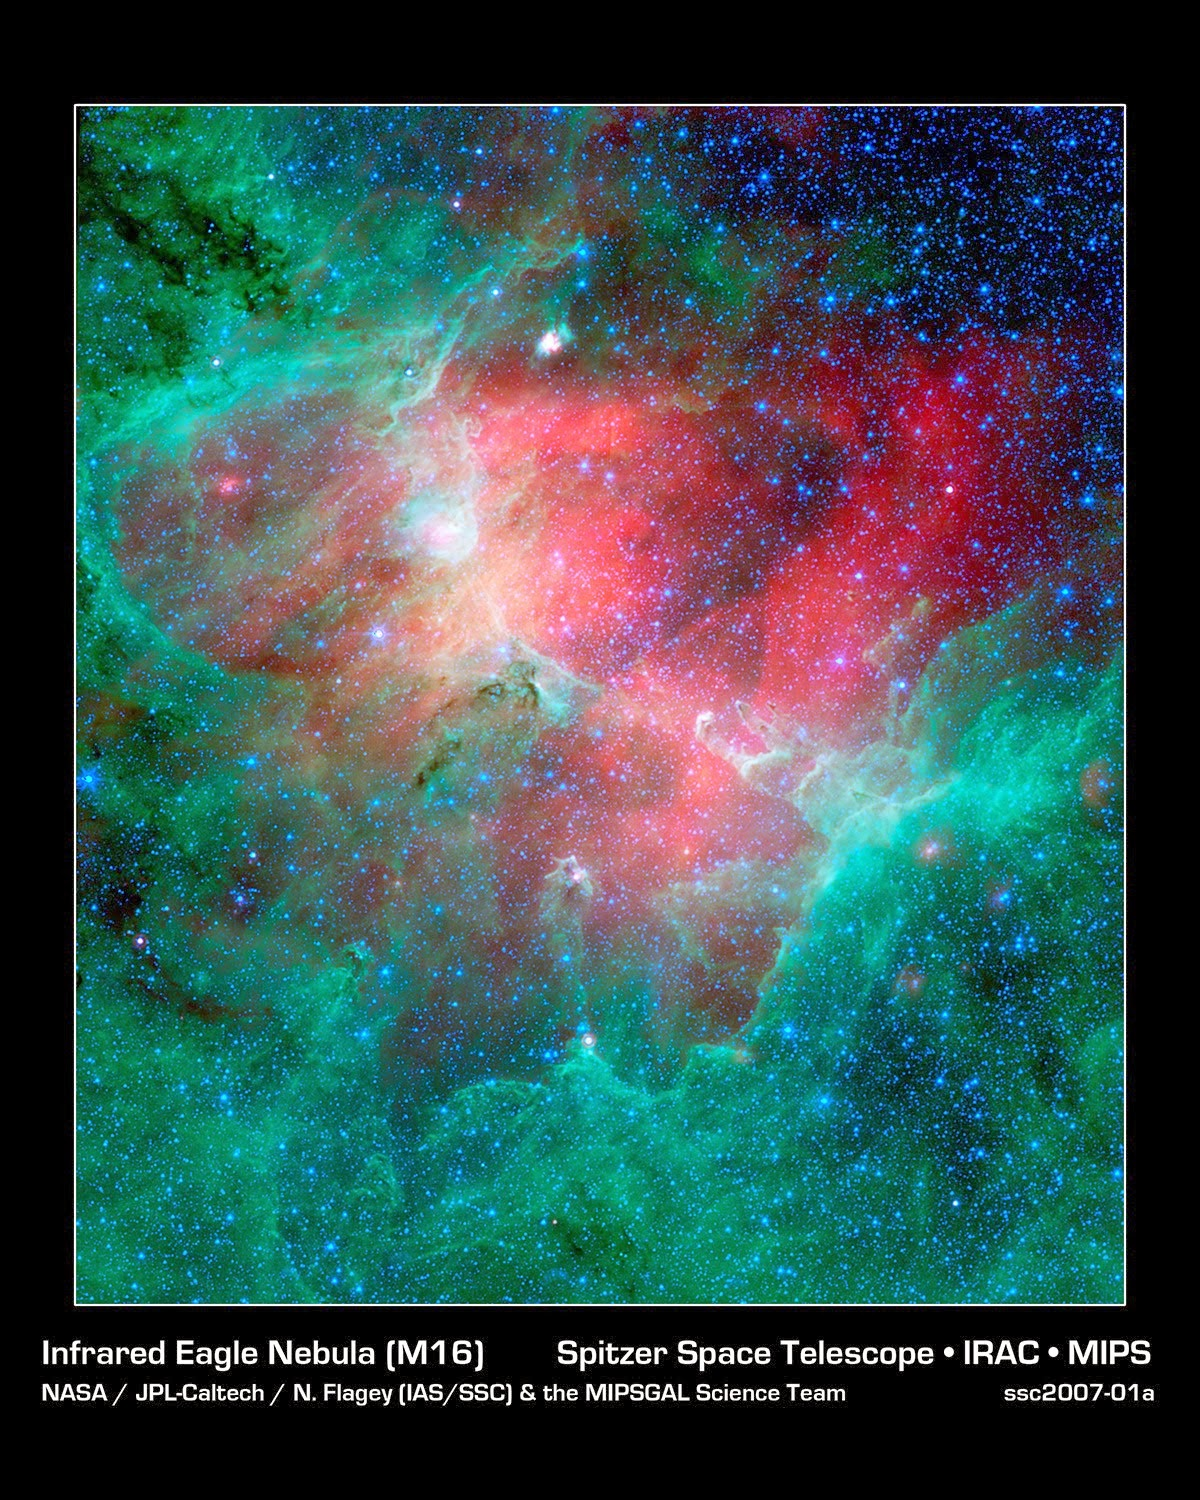 Cosmic Epic Unfolds in Infrared: The Eagle Nebula